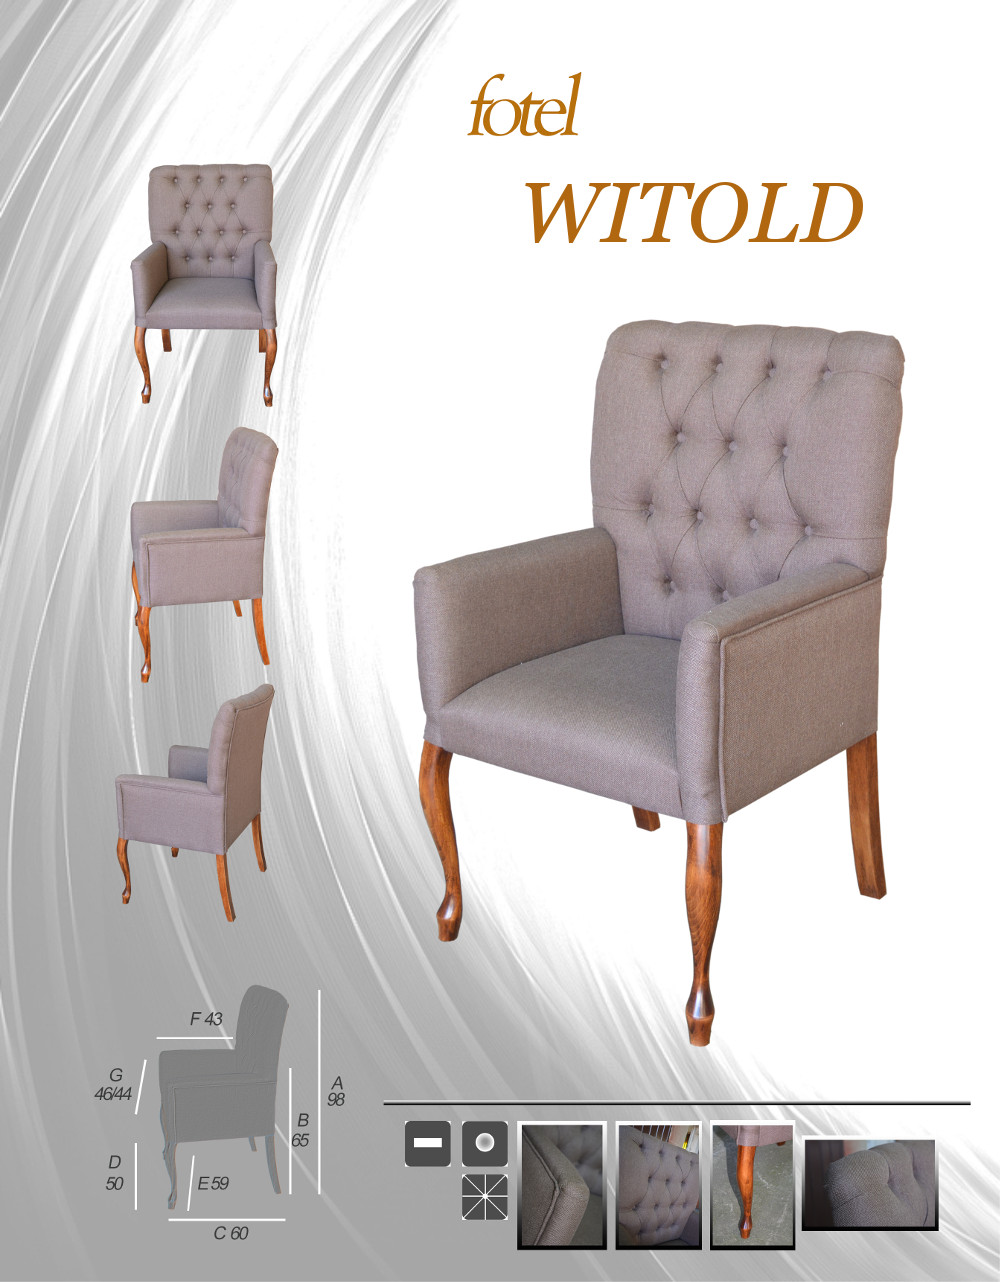 Fotel pikowany Witold styl Chesterfield